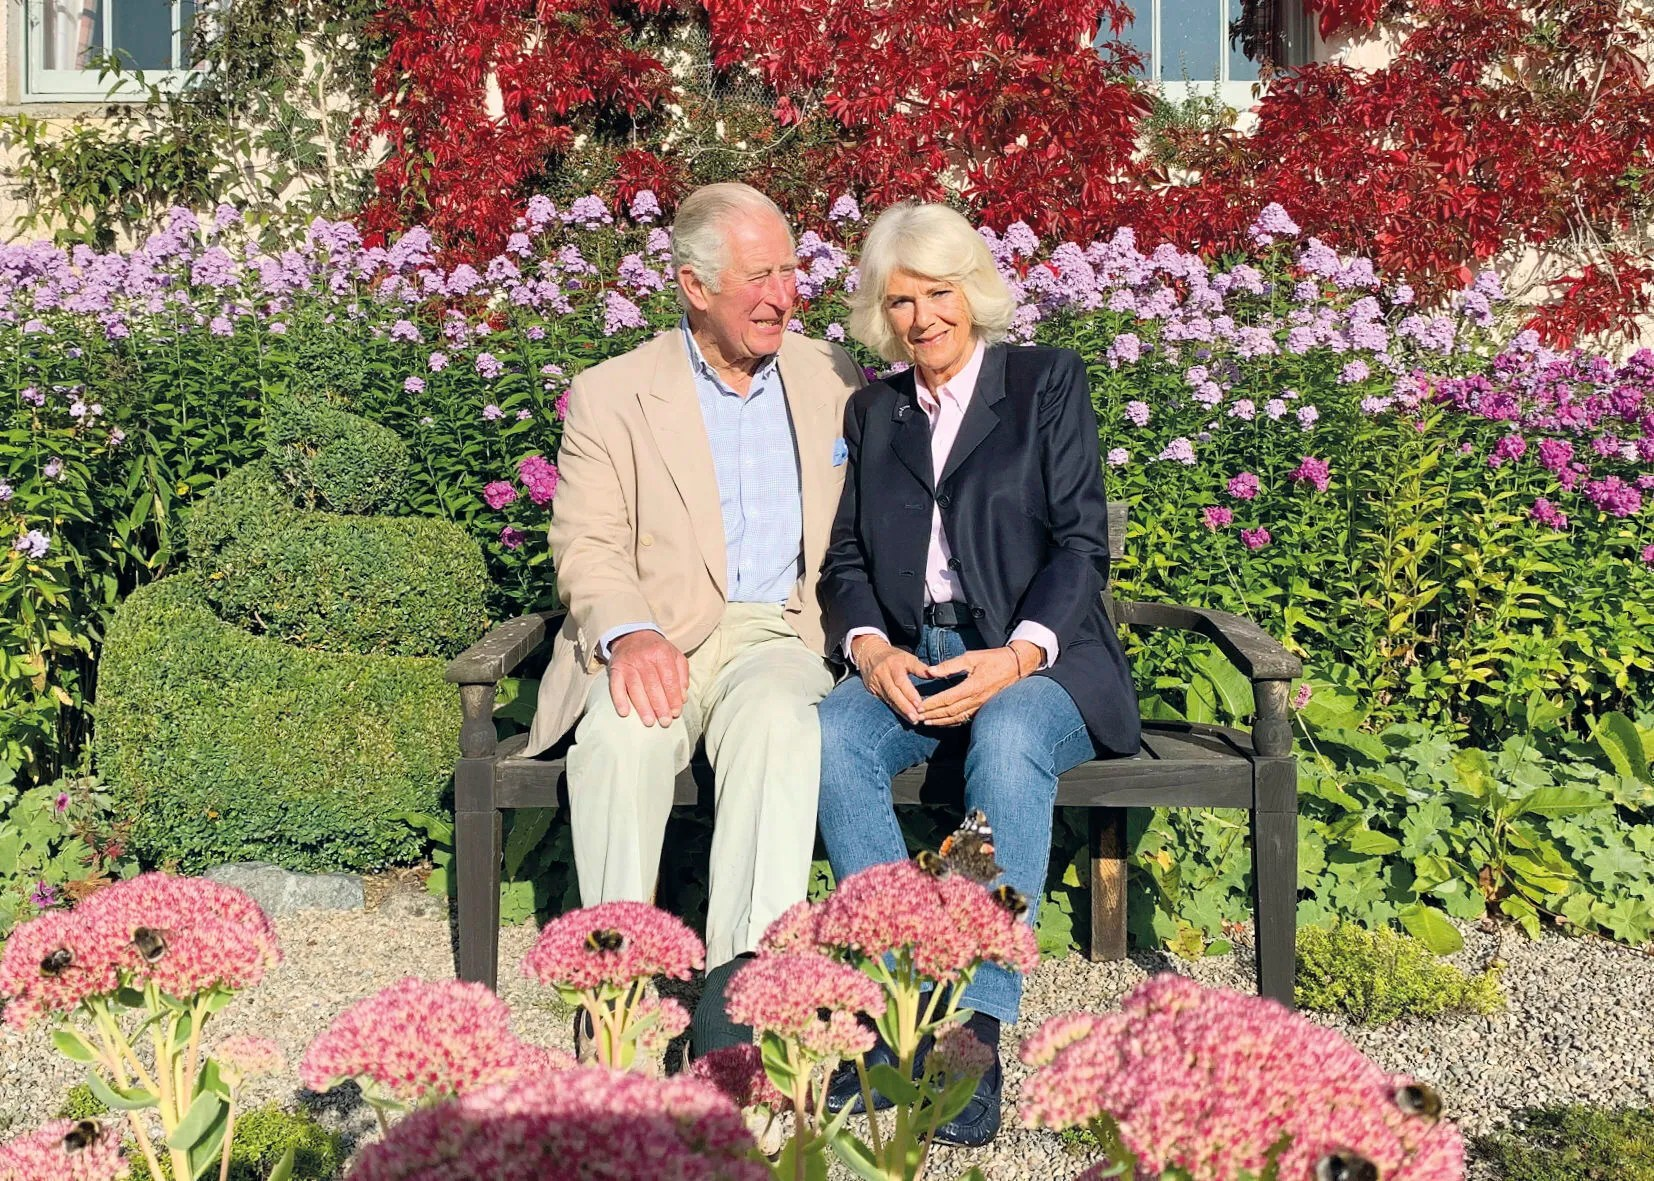 Behold, the gardens featured in the 2020 Christmas card of Prince Charles and Camilla, Duchess of Cornwall taken at Birkhall, Scotland.